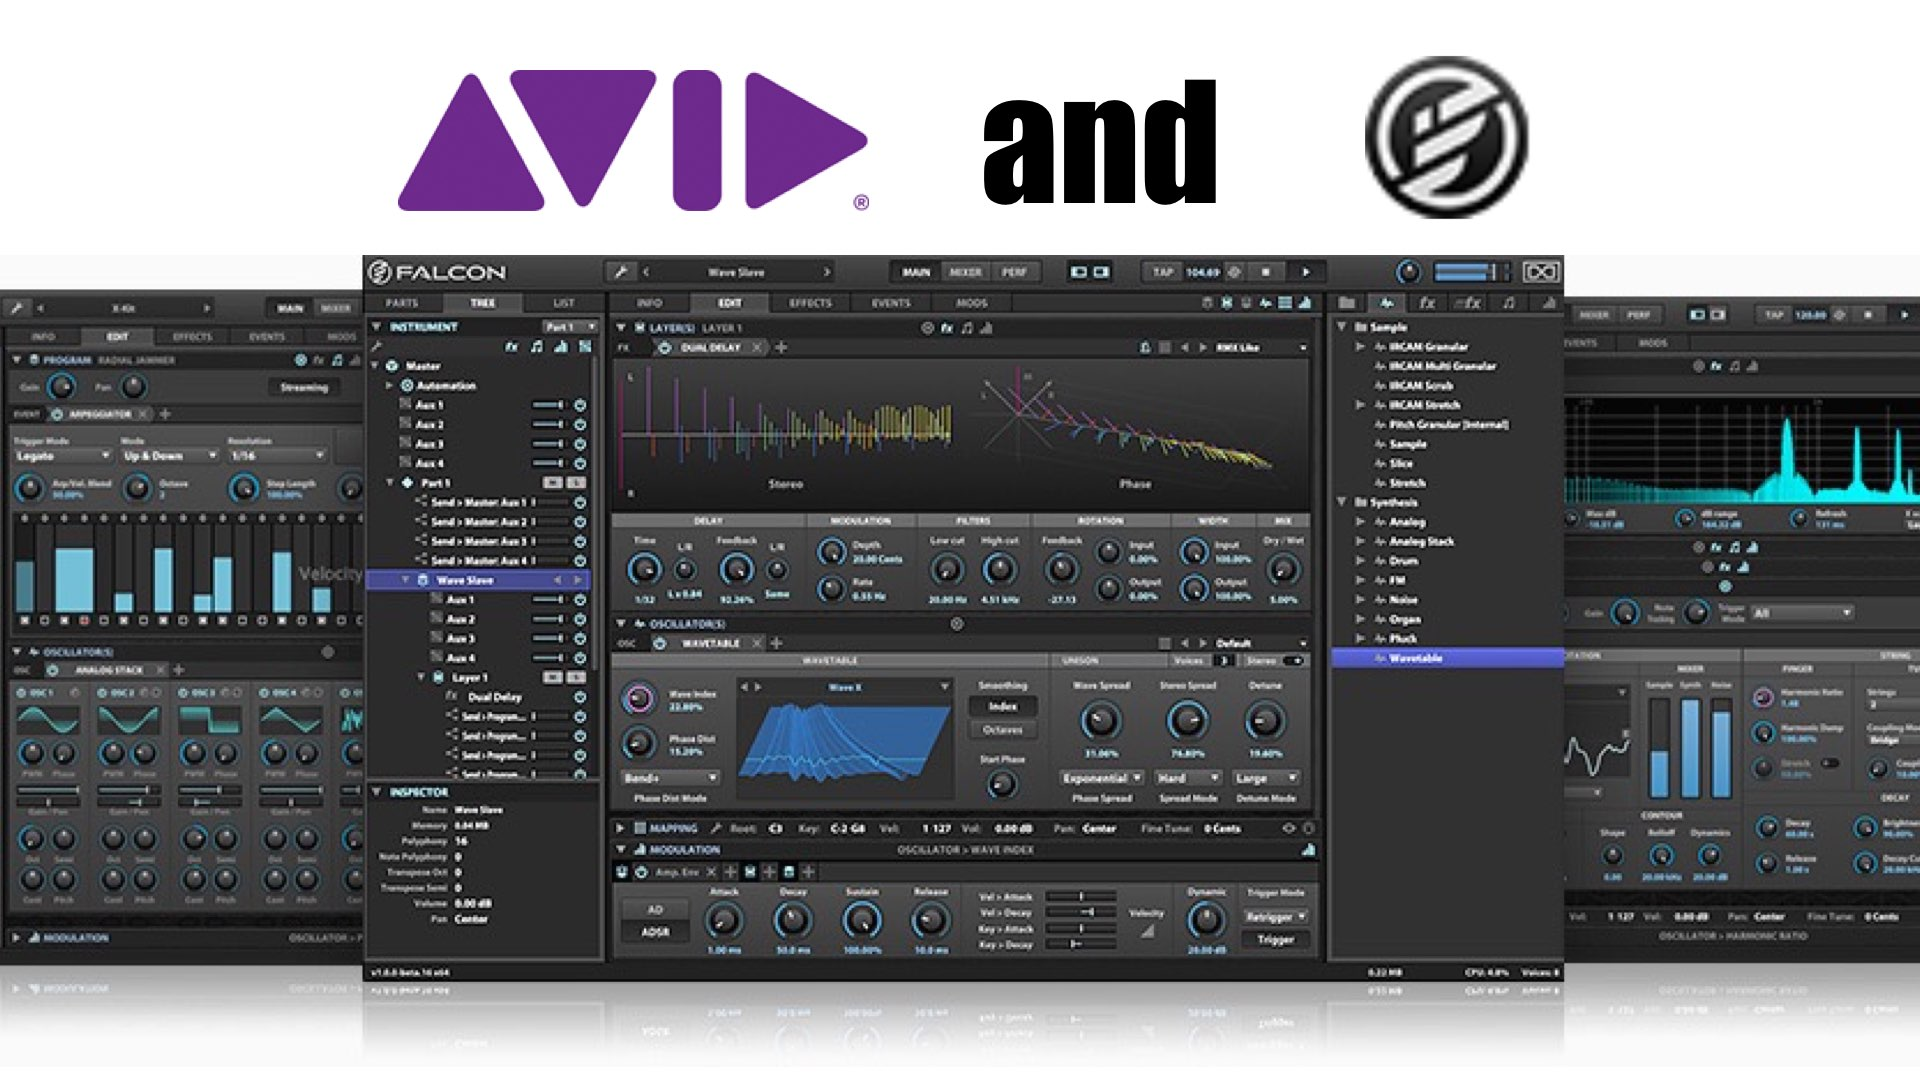 Avid Pro Tools now Includes UVI's Hybrid Virtual Instrument